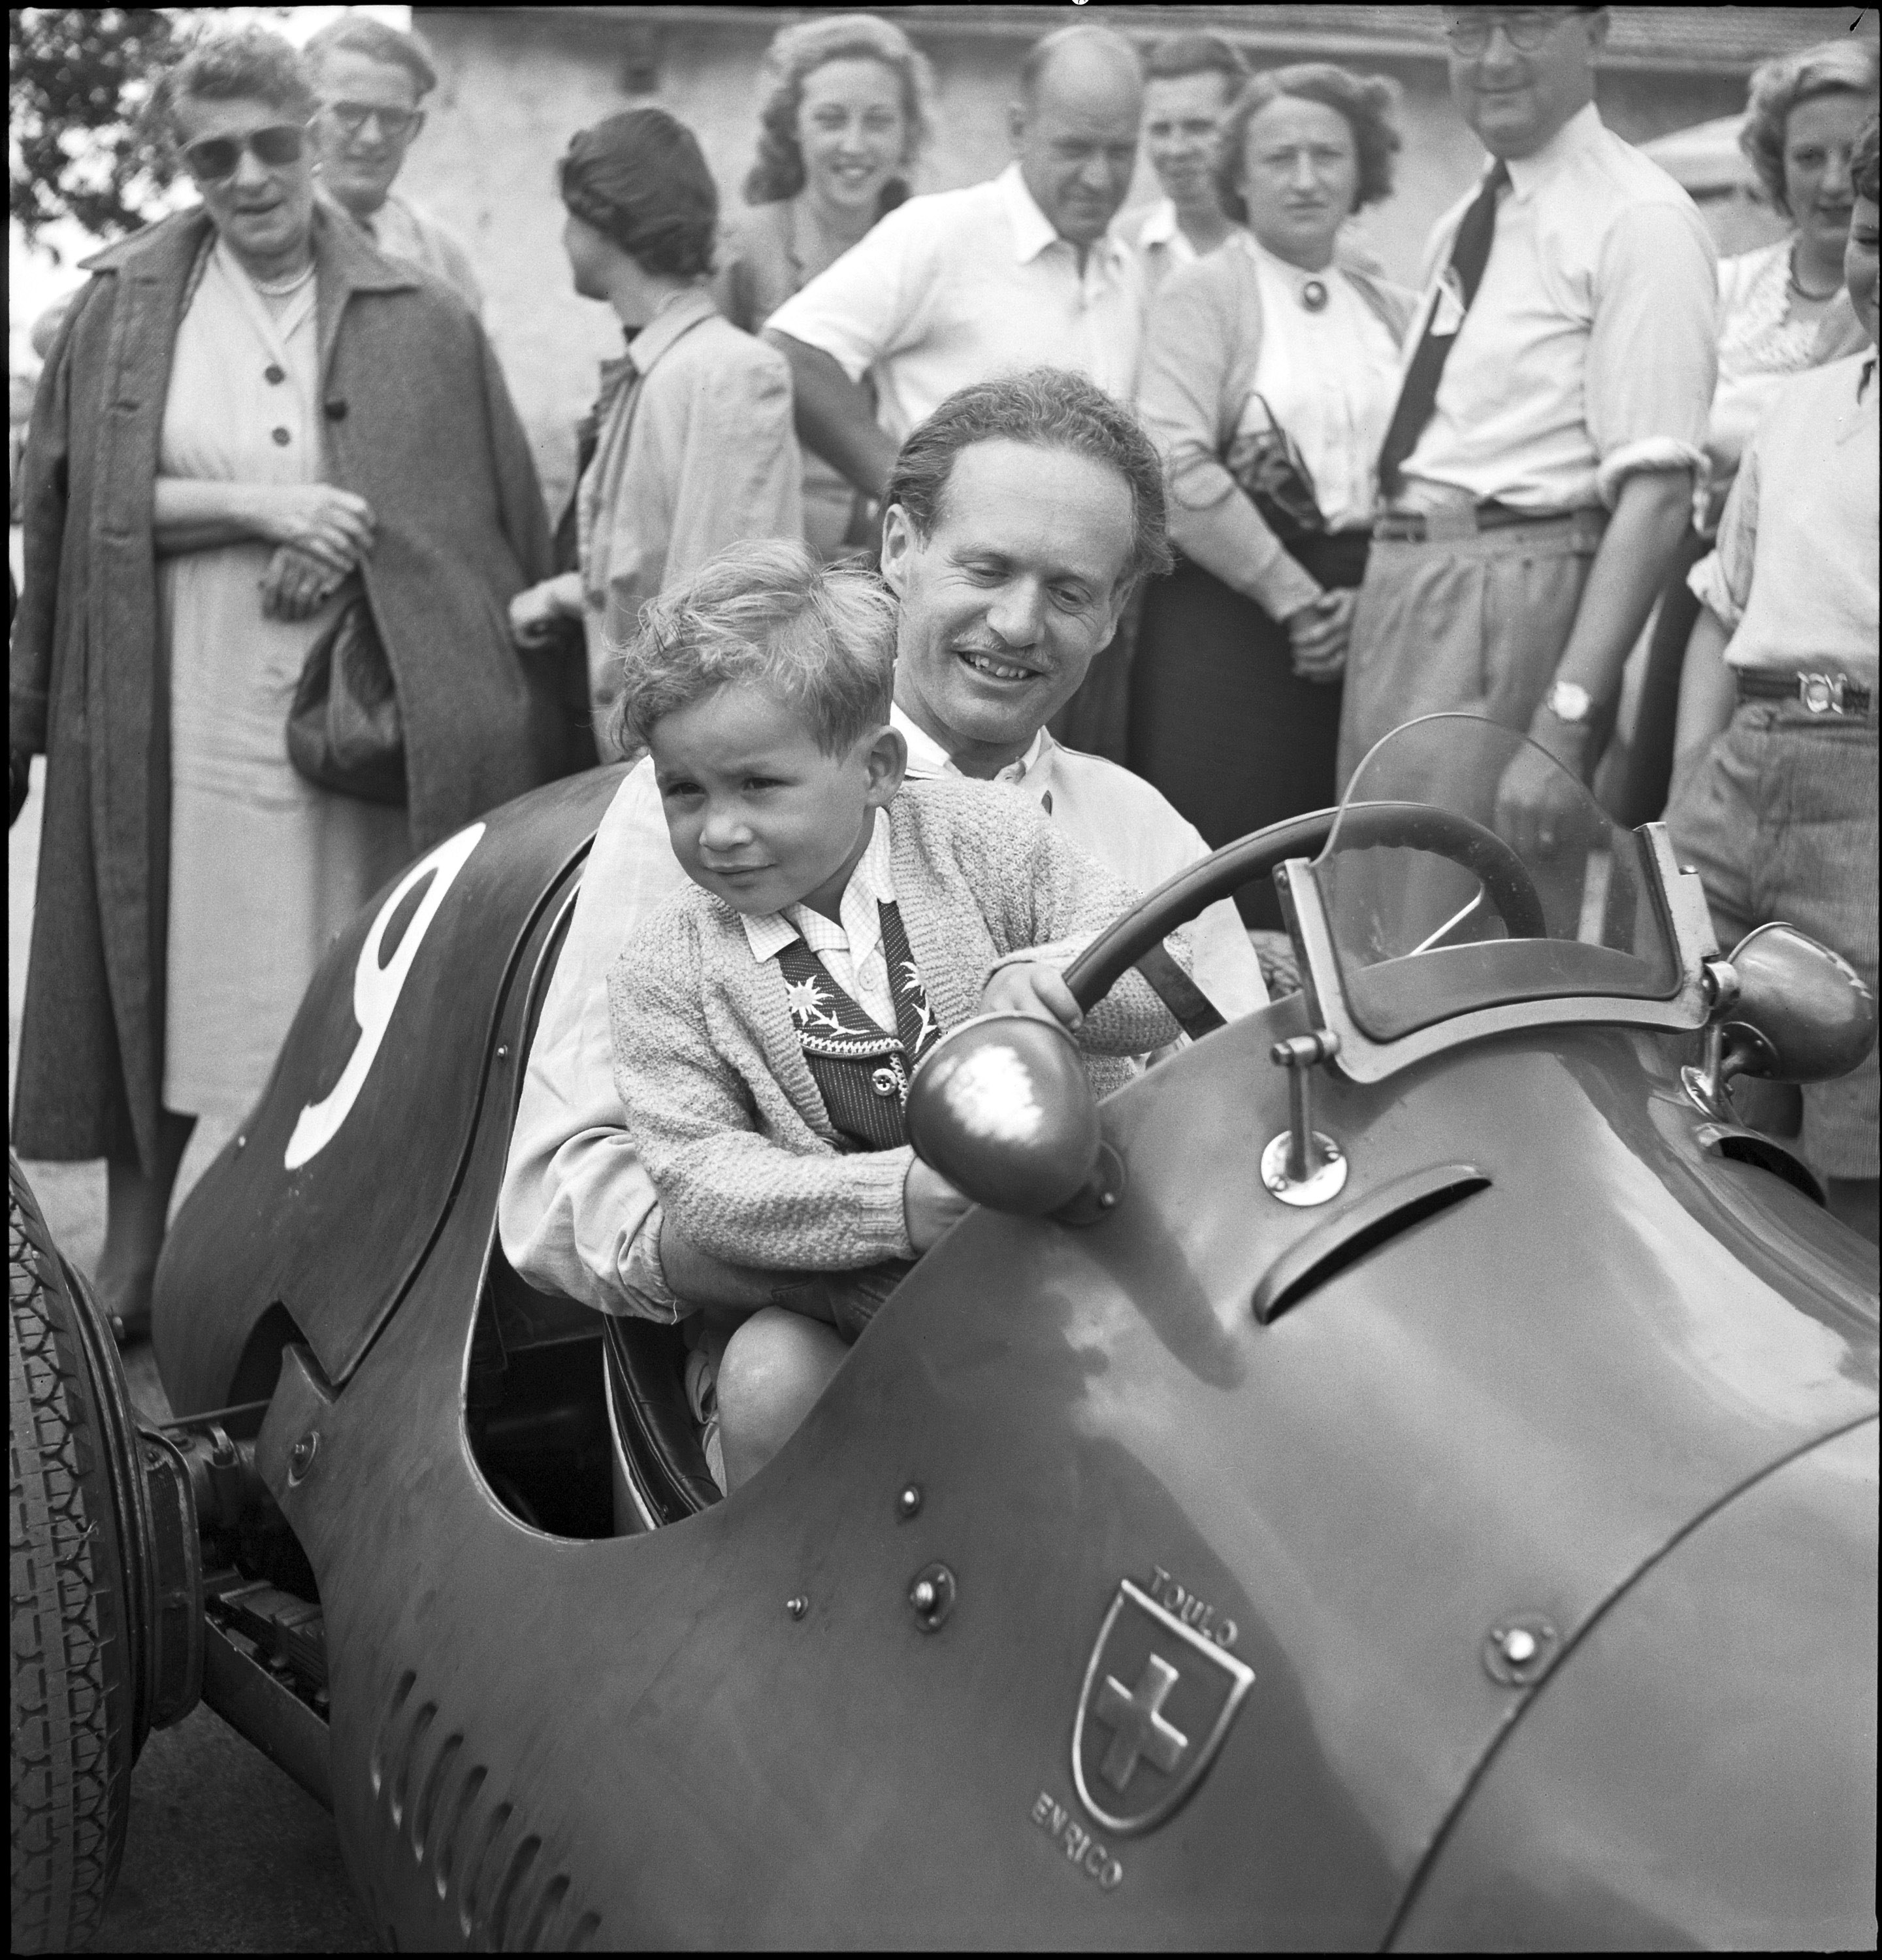 Swiss aristocrat Emmanuel Toulo de Graffenried with his son in 1950. De Graffenried took part in 22 races between 1950 and 1956, with a fourth place his best result. (RDB/ATP)